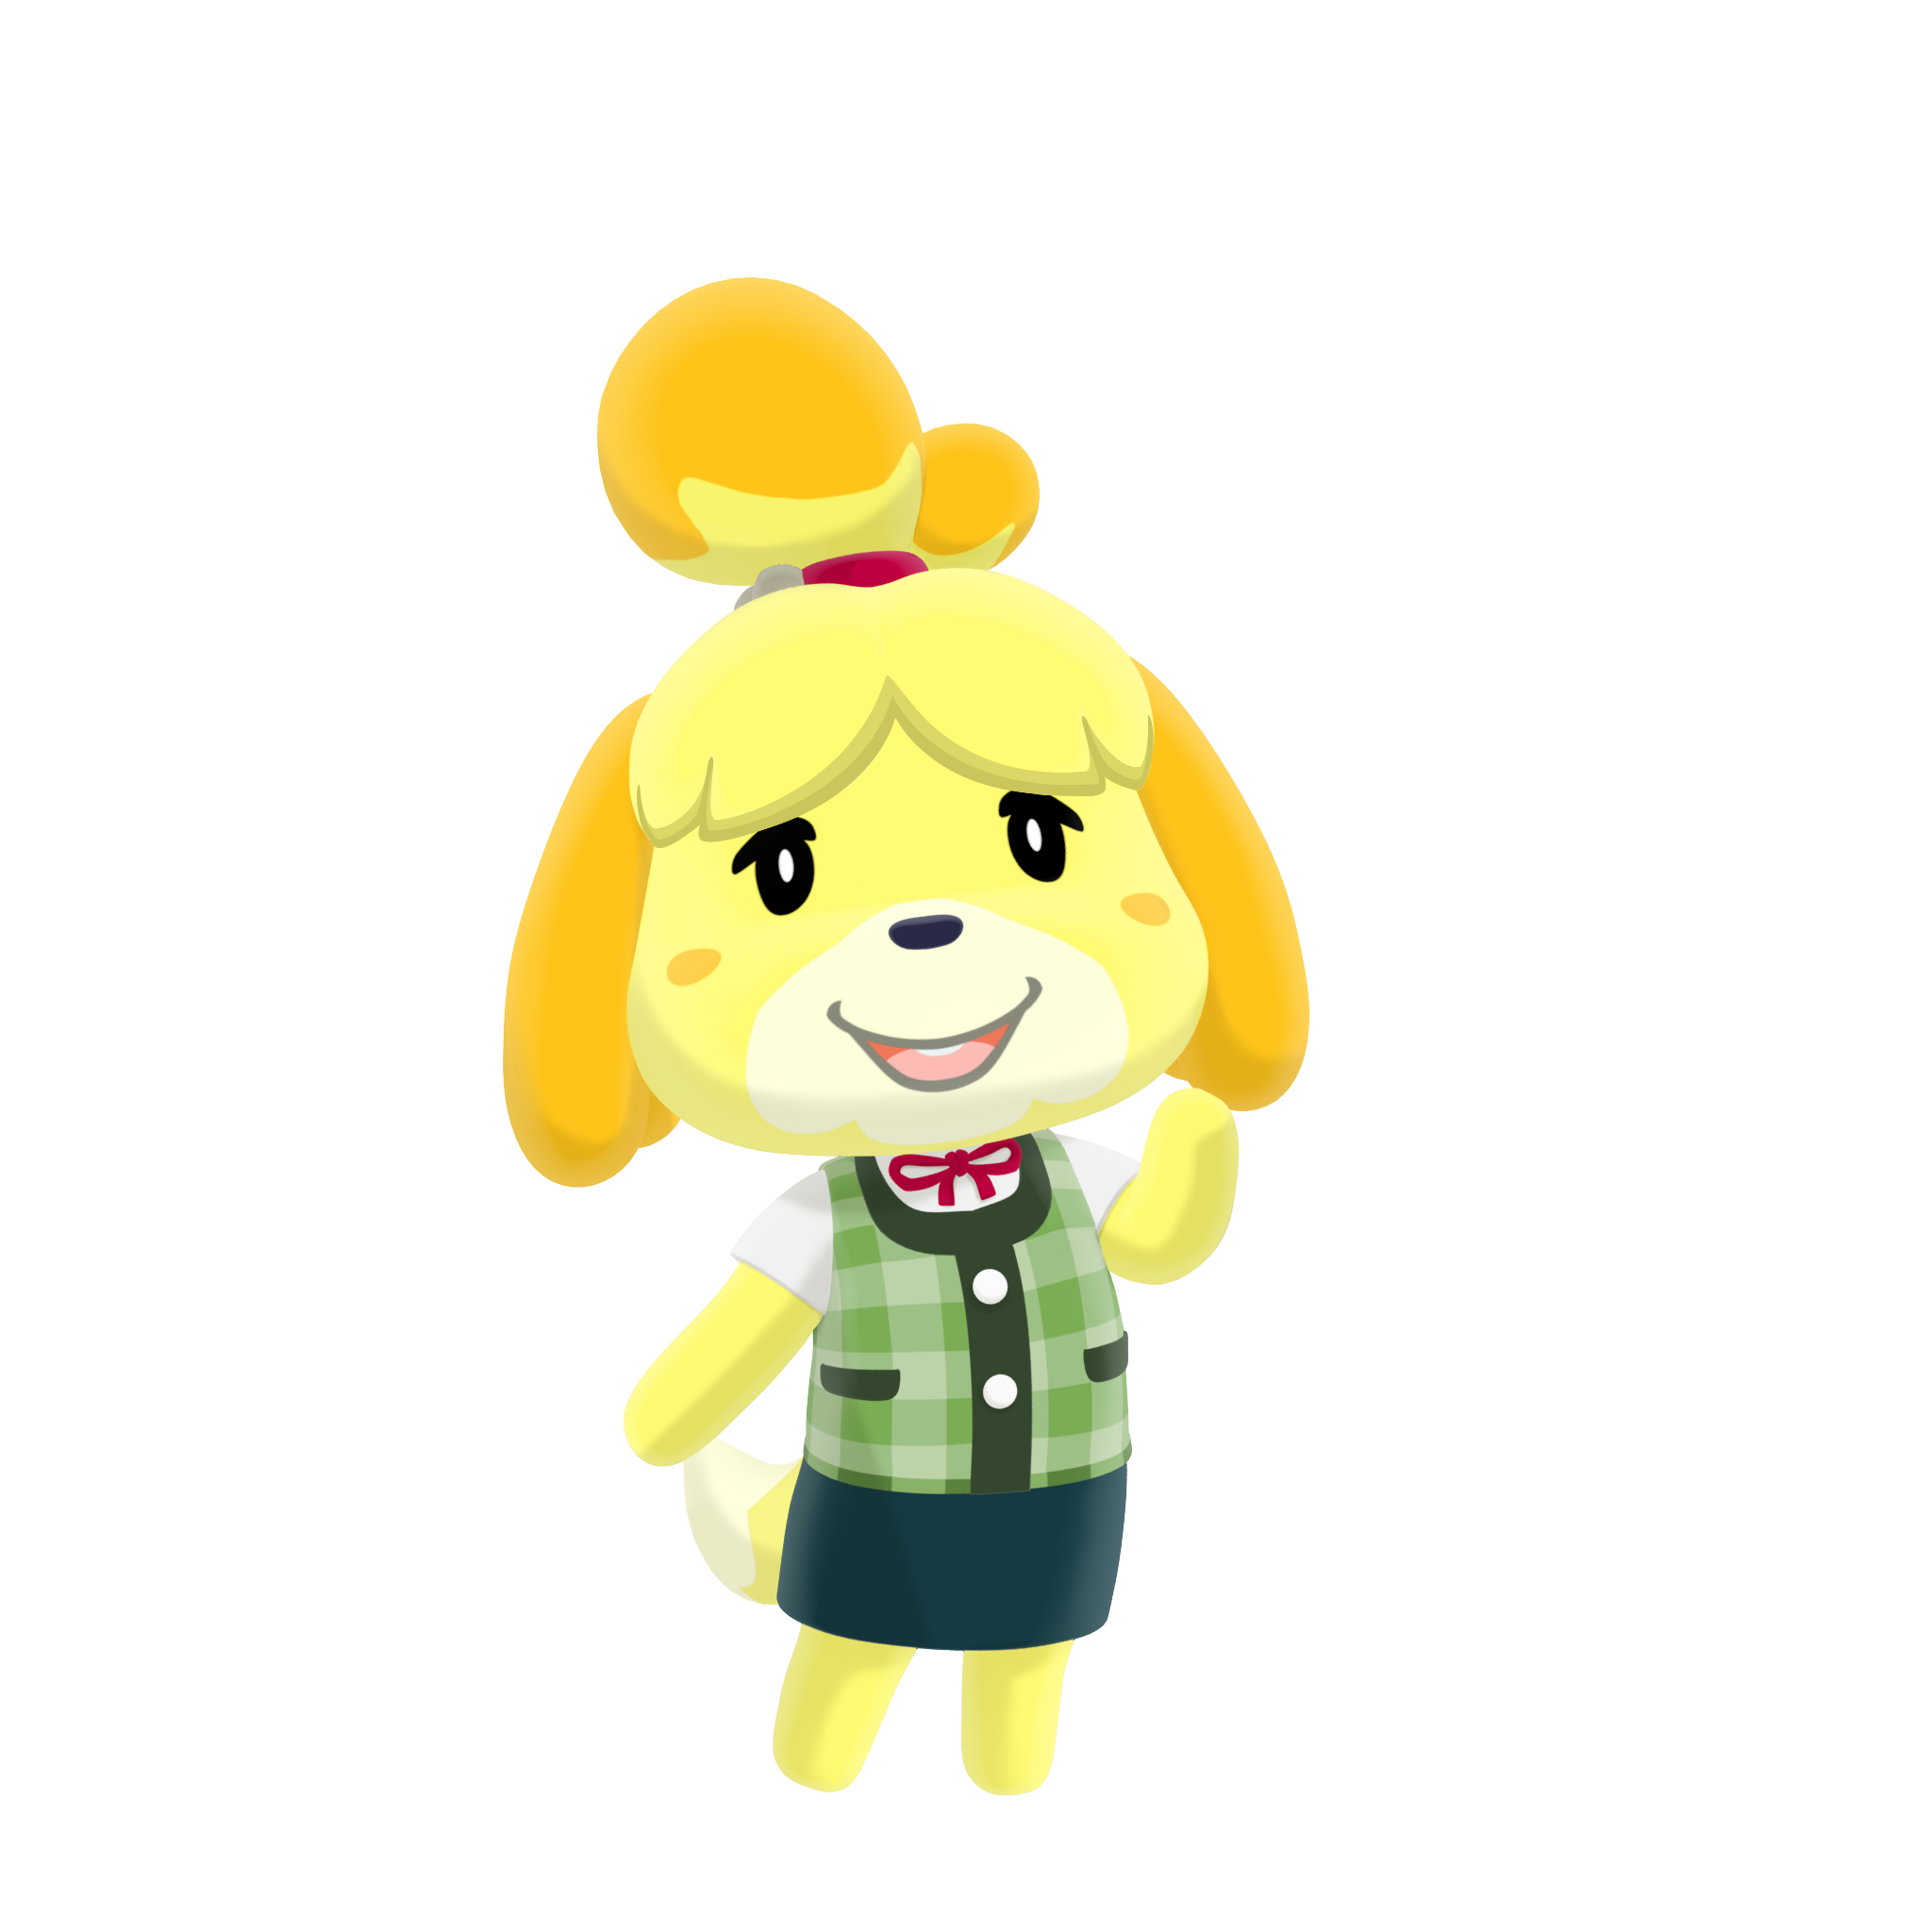 Animal crossing isabelle png. Image pocket camp character